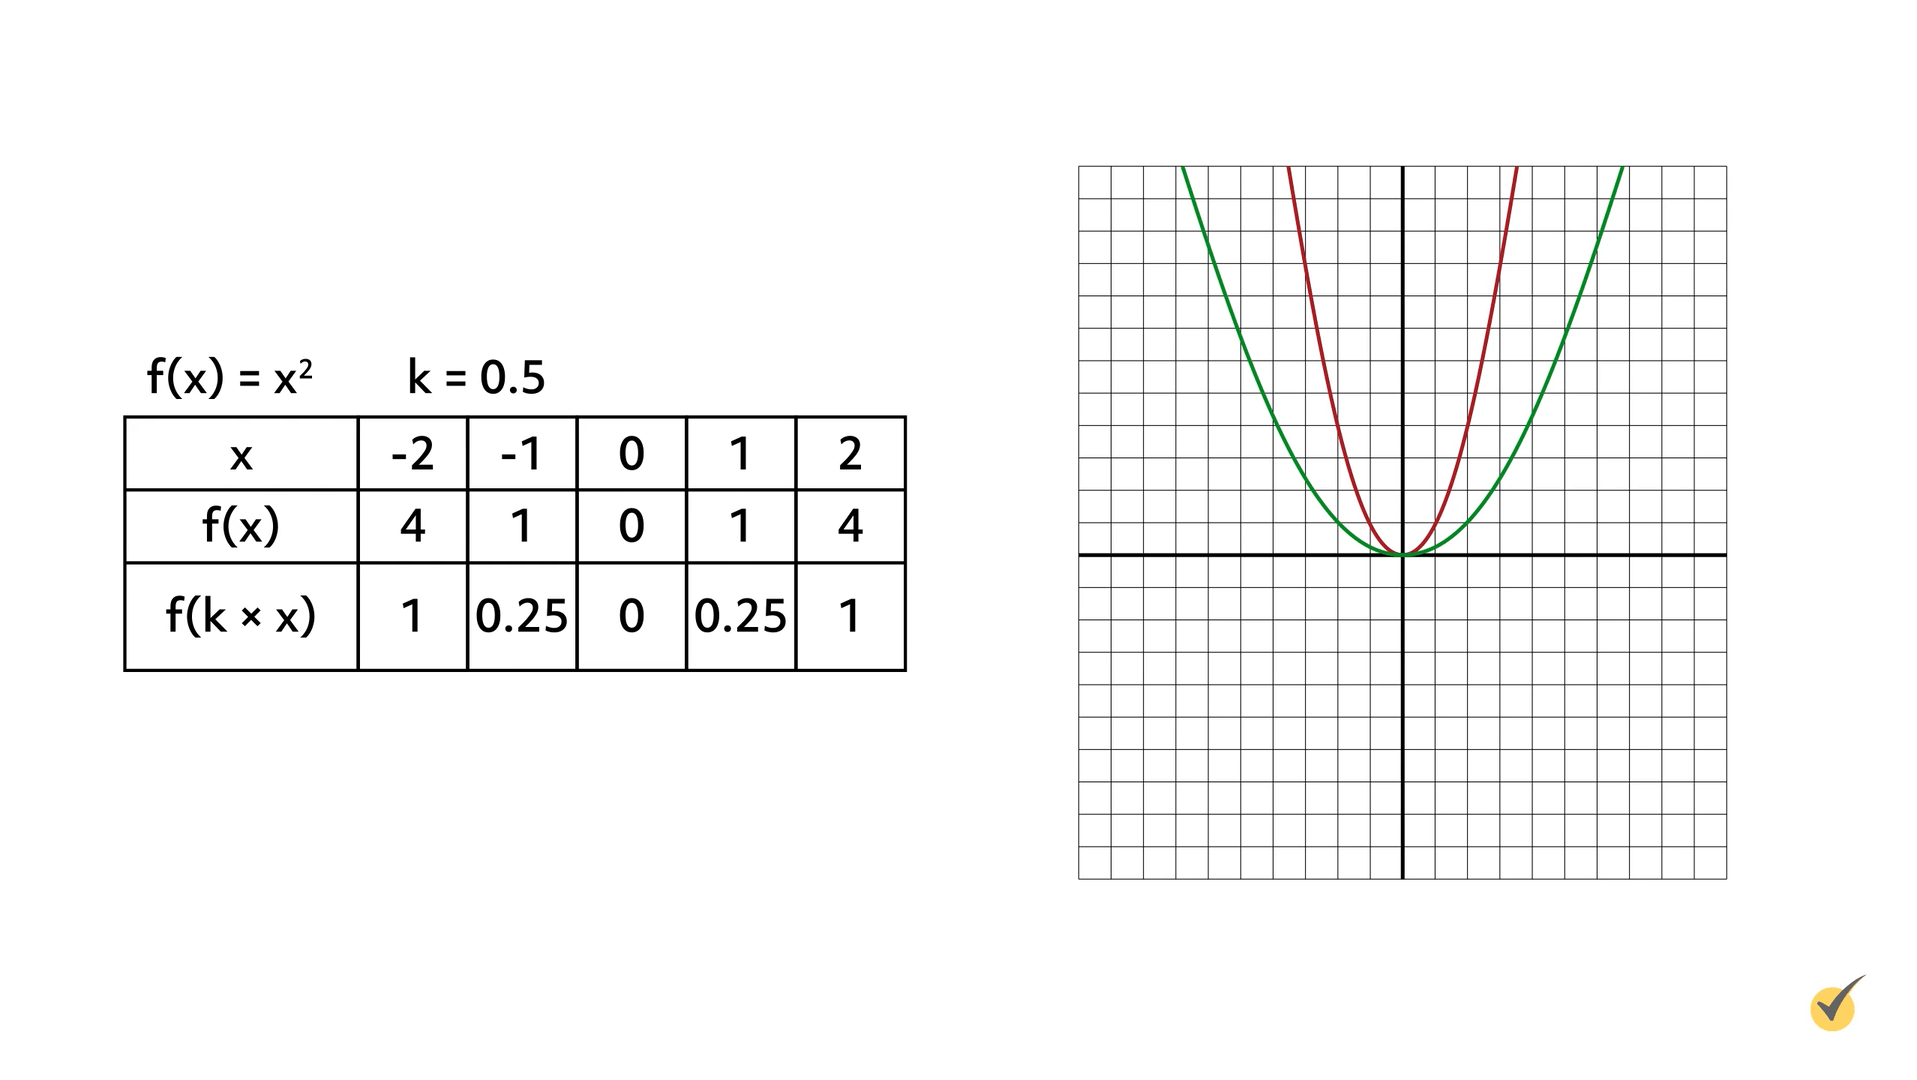 Image of f(x)=x^2 and K=0.5 plotted on a graph.